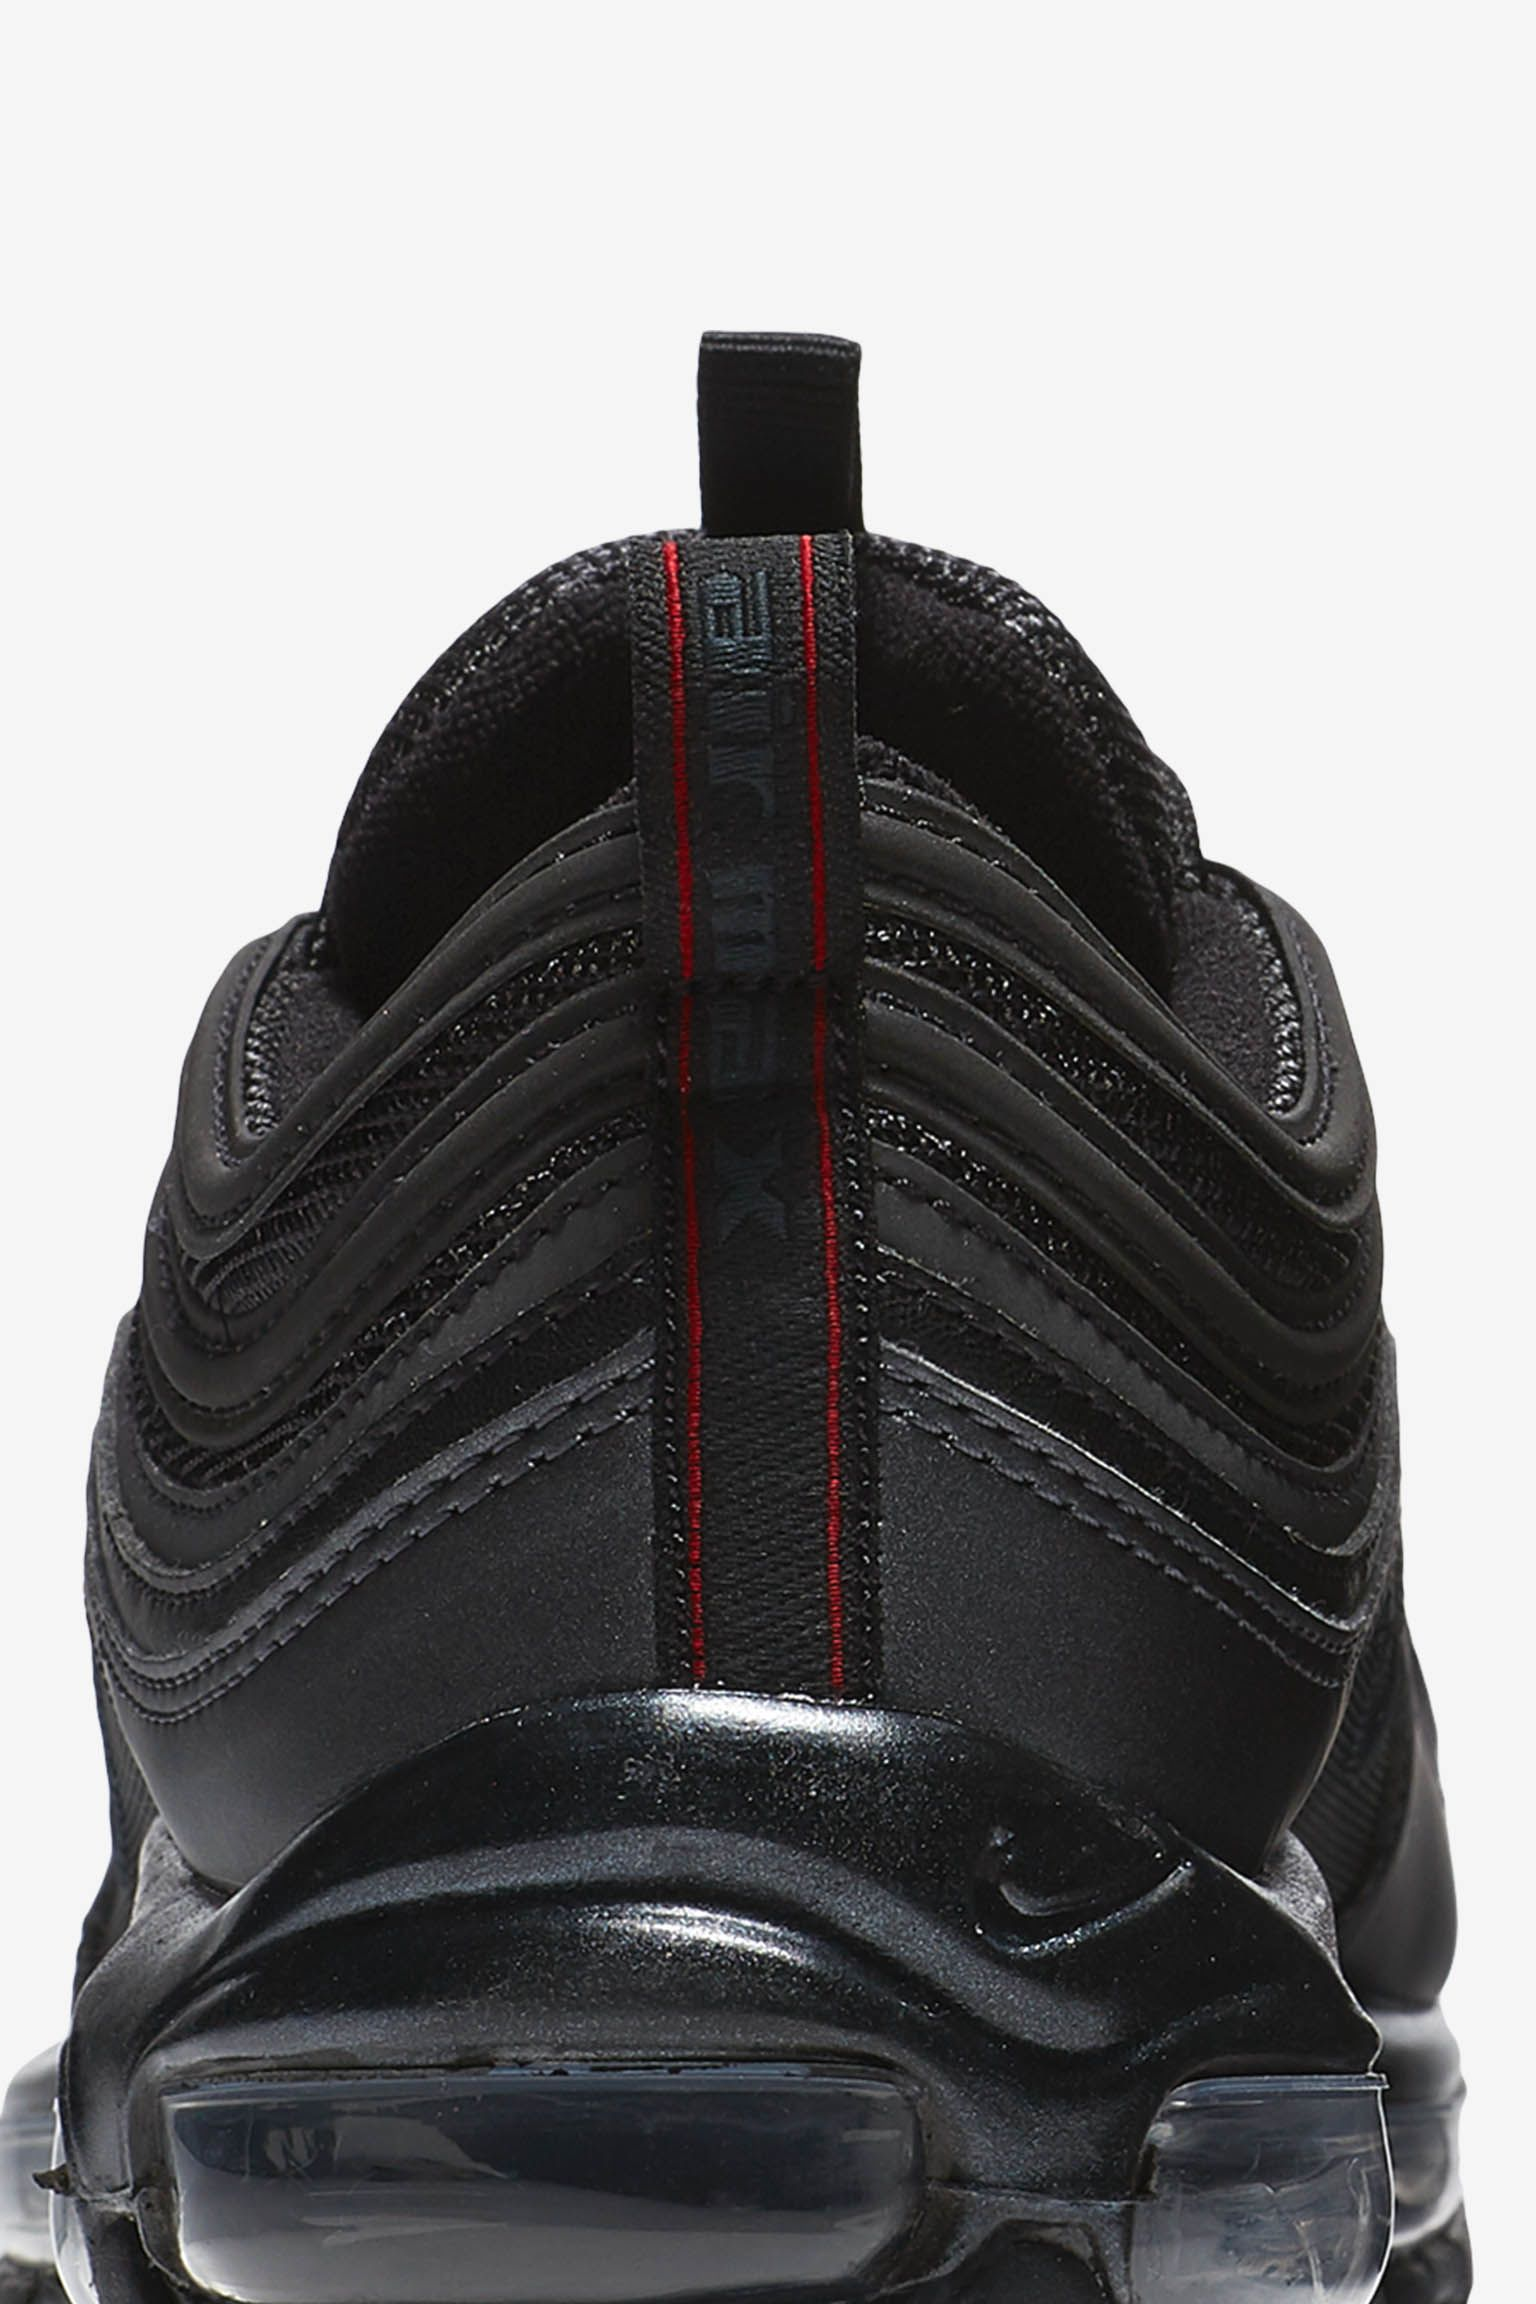 Nike Air Max 97 'Black & Anthracite' Release Date